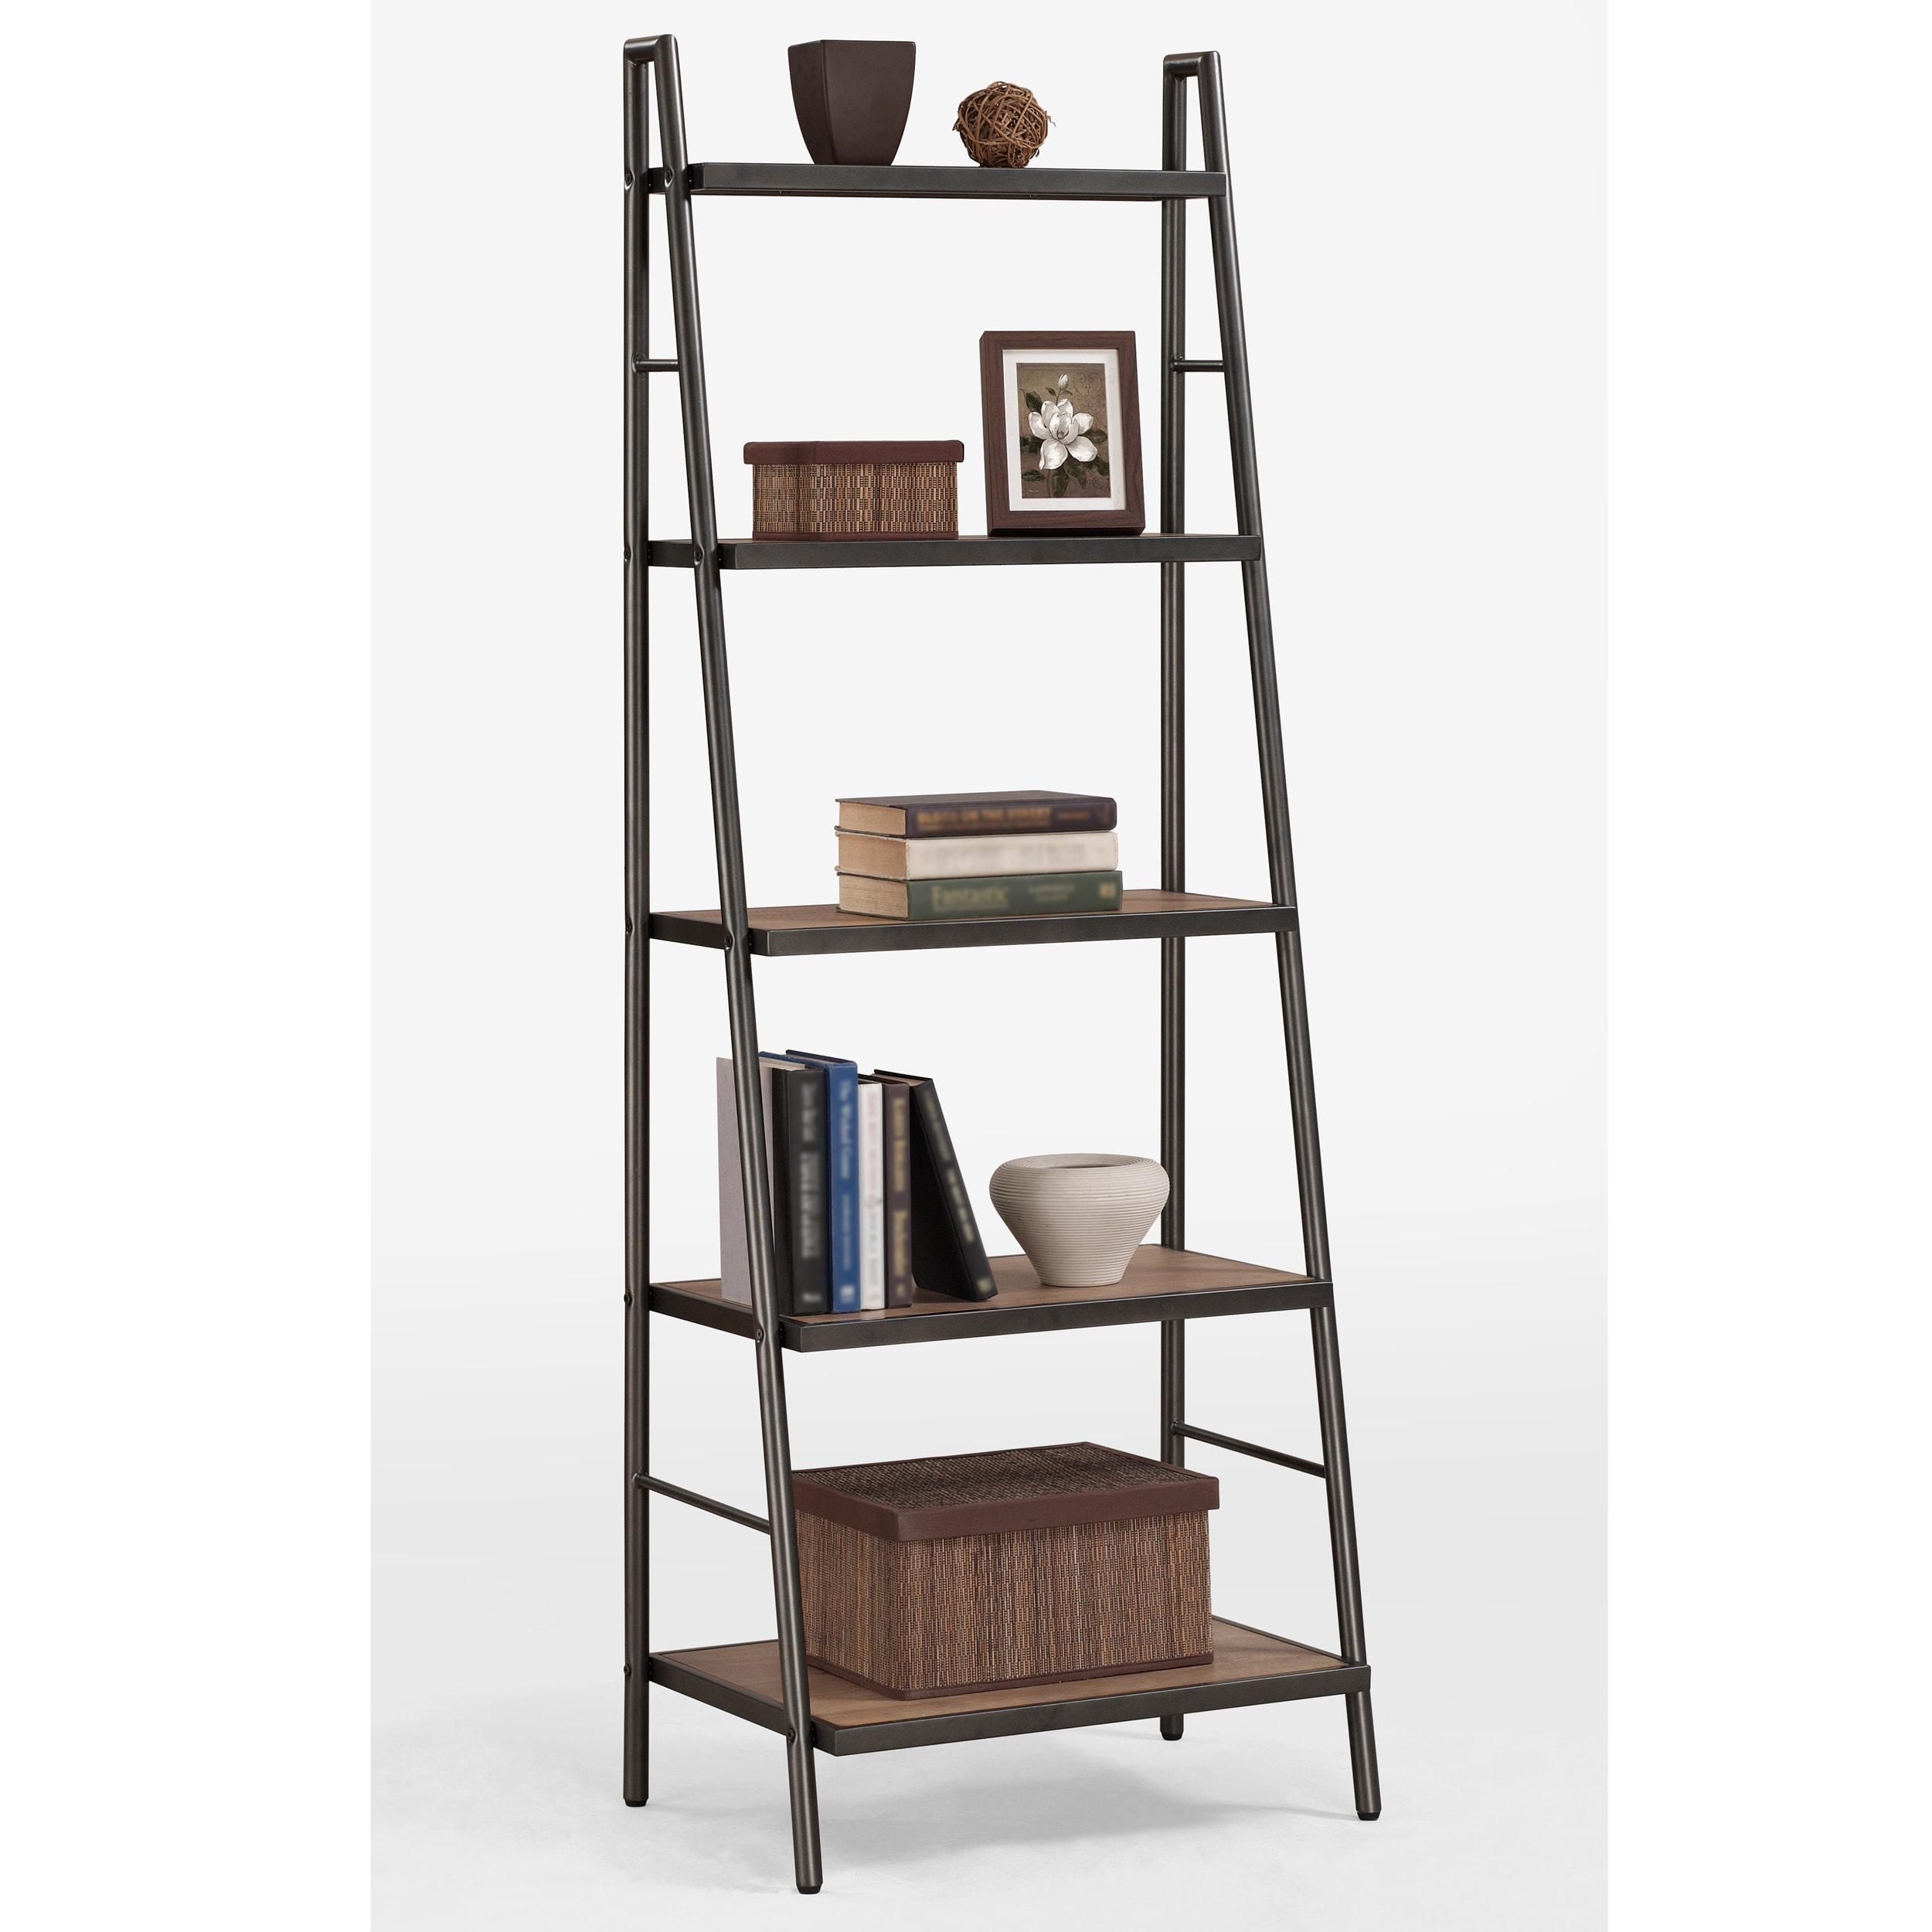 storage white shelf ladder picturesque bathroom well as leaning inspiration vintage in decors organization for ideas design and bookcase using scenic towel